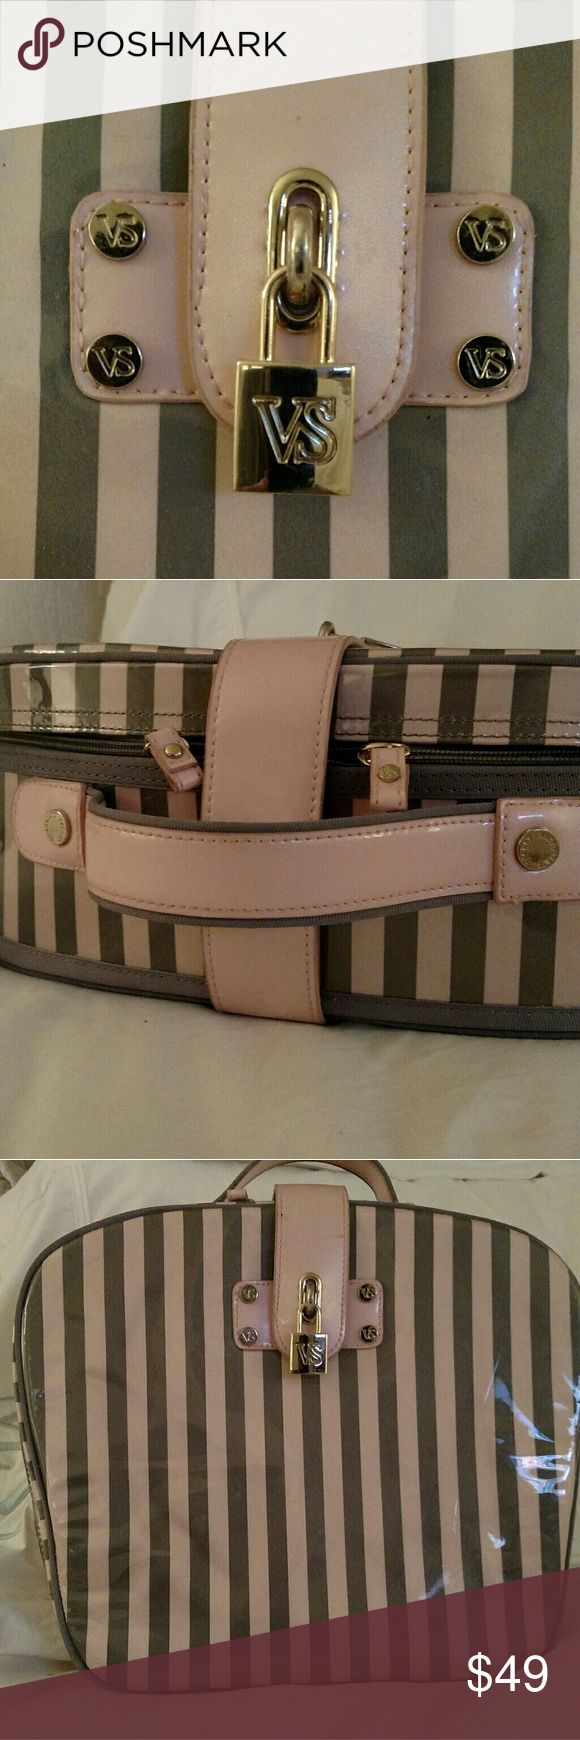 Victoria's Secret case Victoria's Secret train case!  Pink and Gray stripe, Gold lock...with handle...excellent shape...no rips or tears... interior has makeup stains...can be used as makeup case... Large sized... Very unique.... offers accepted Victoria's Secret Makeup